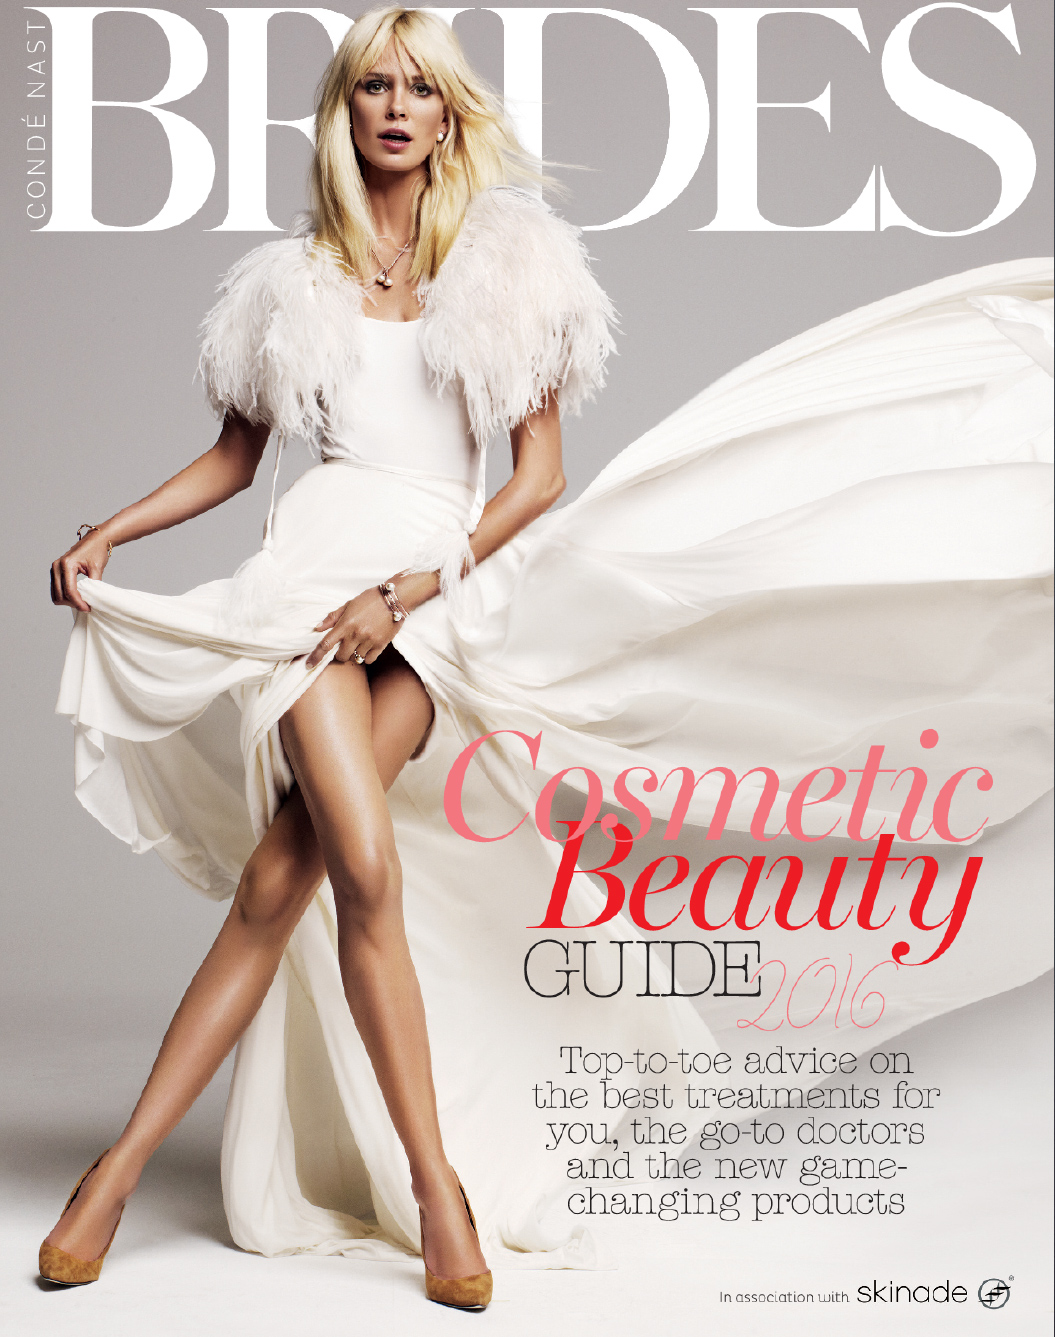 Brides – Cosmetic beauty guide 2016